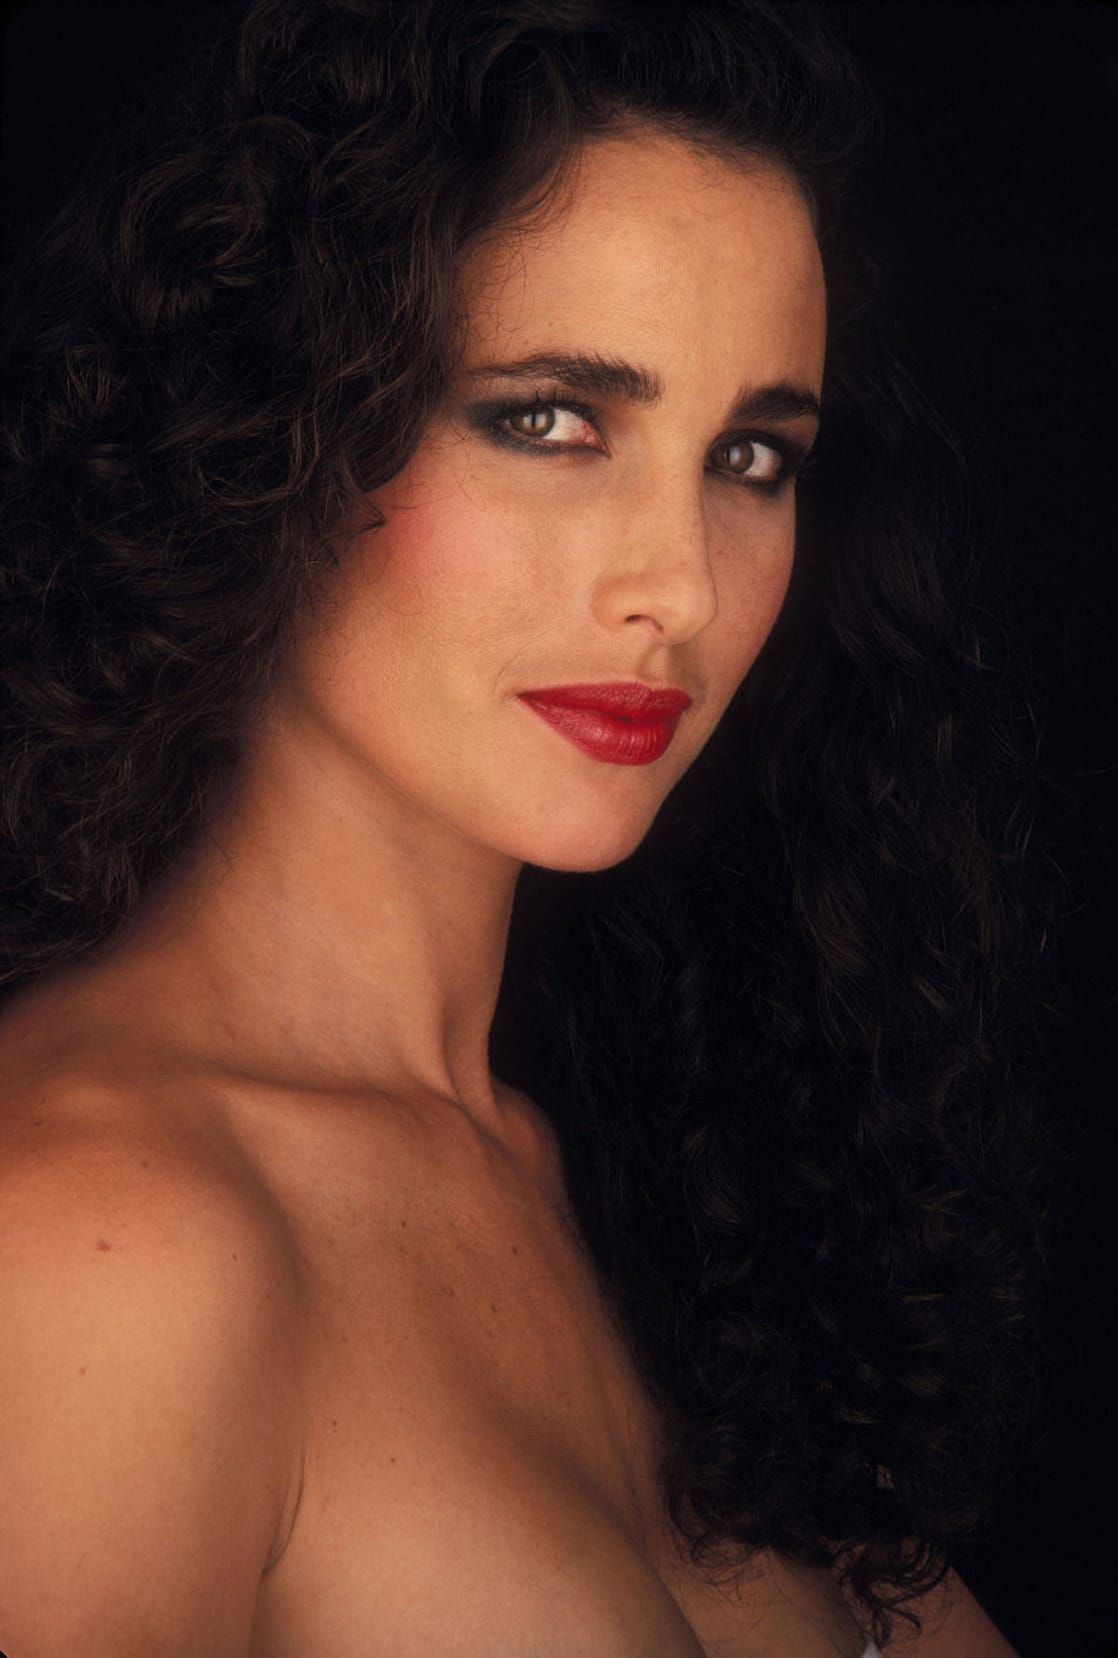 Andie macdowell nude room service with